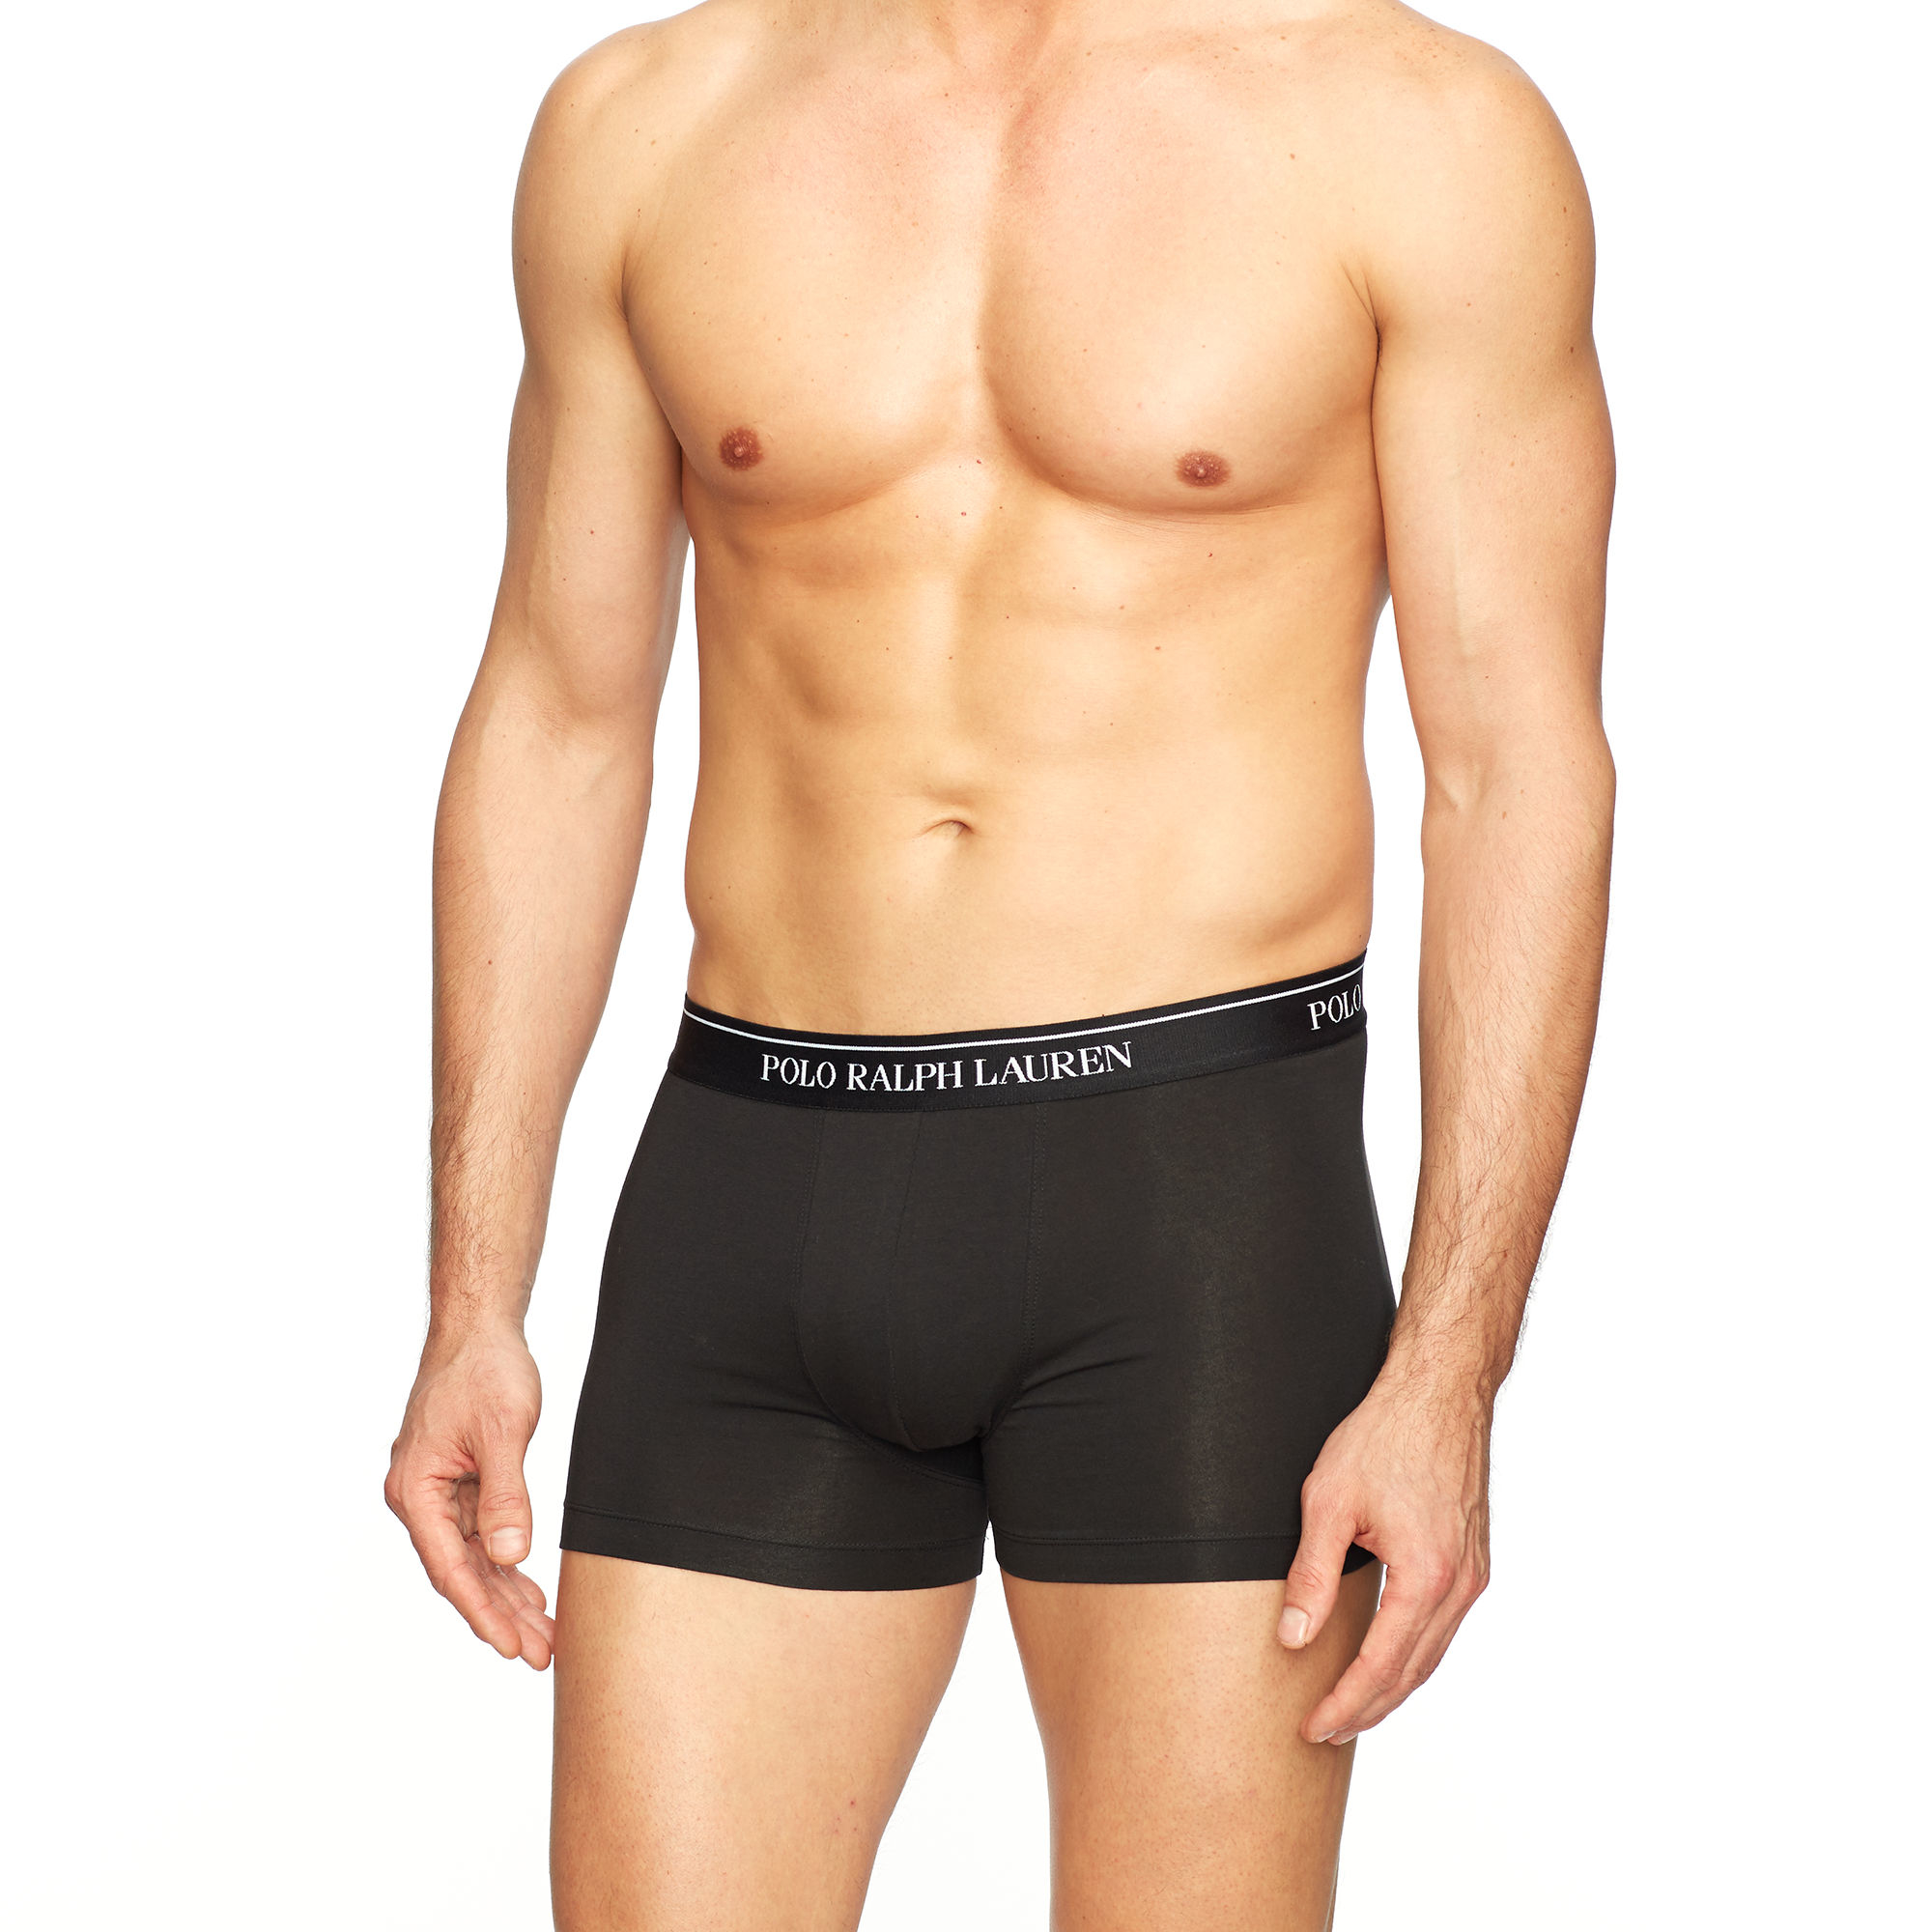 Polo ralph lauren Stretch-cotton-trunk 3-pack in Black for ...